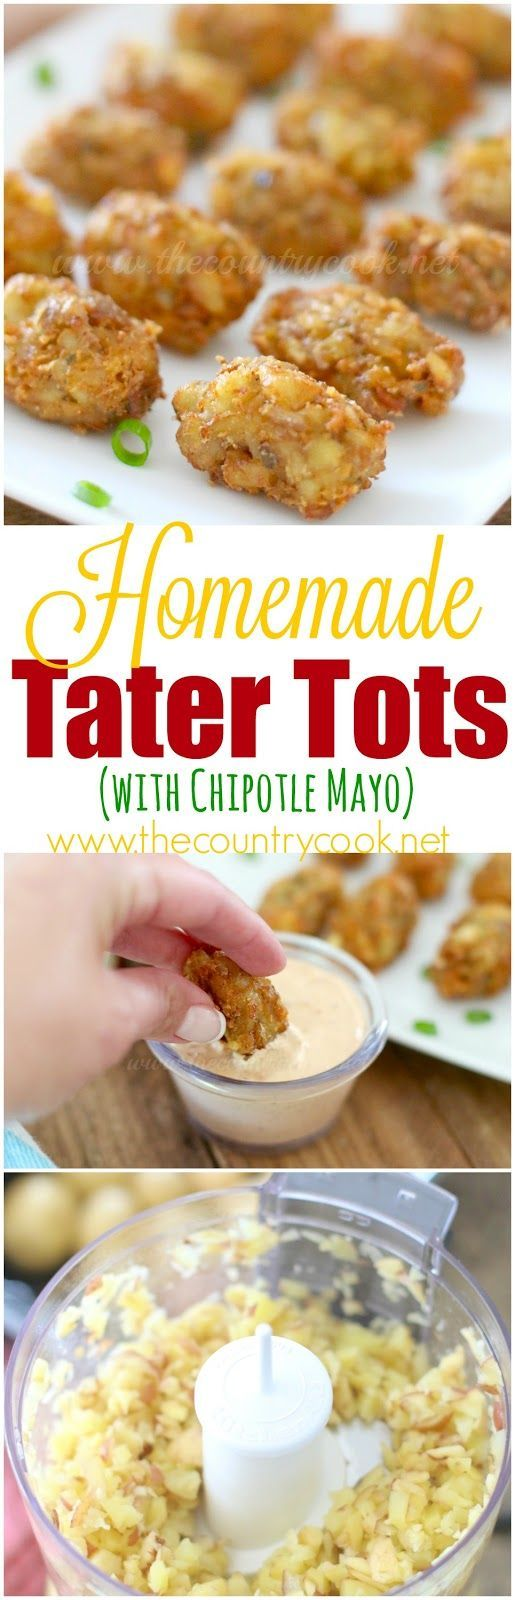 Homemade Tater Tots with homemade chipotle mayo recipe from The Country Cook